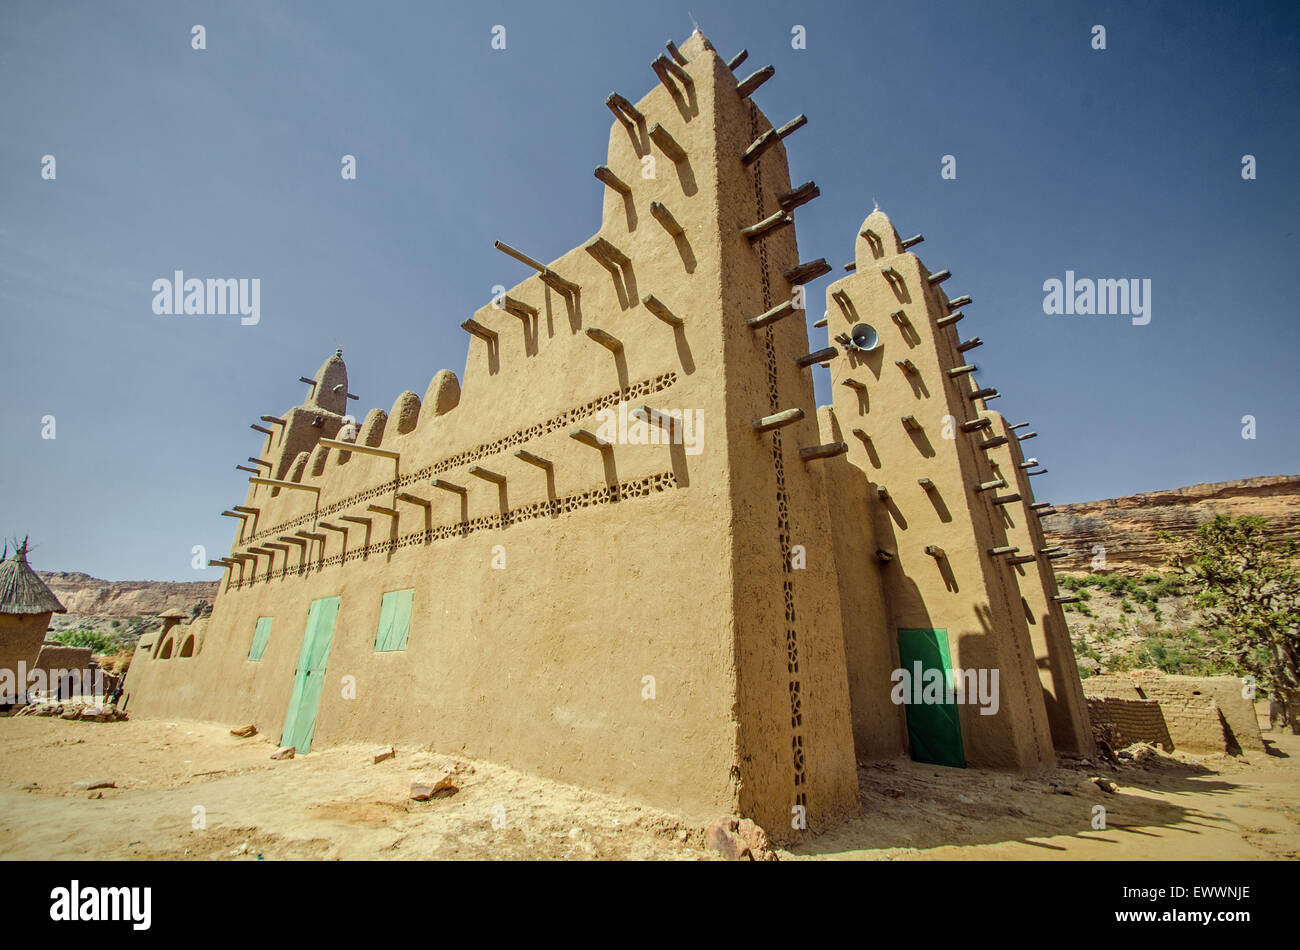 Mosque in Dogon country, Mali - Stock Image